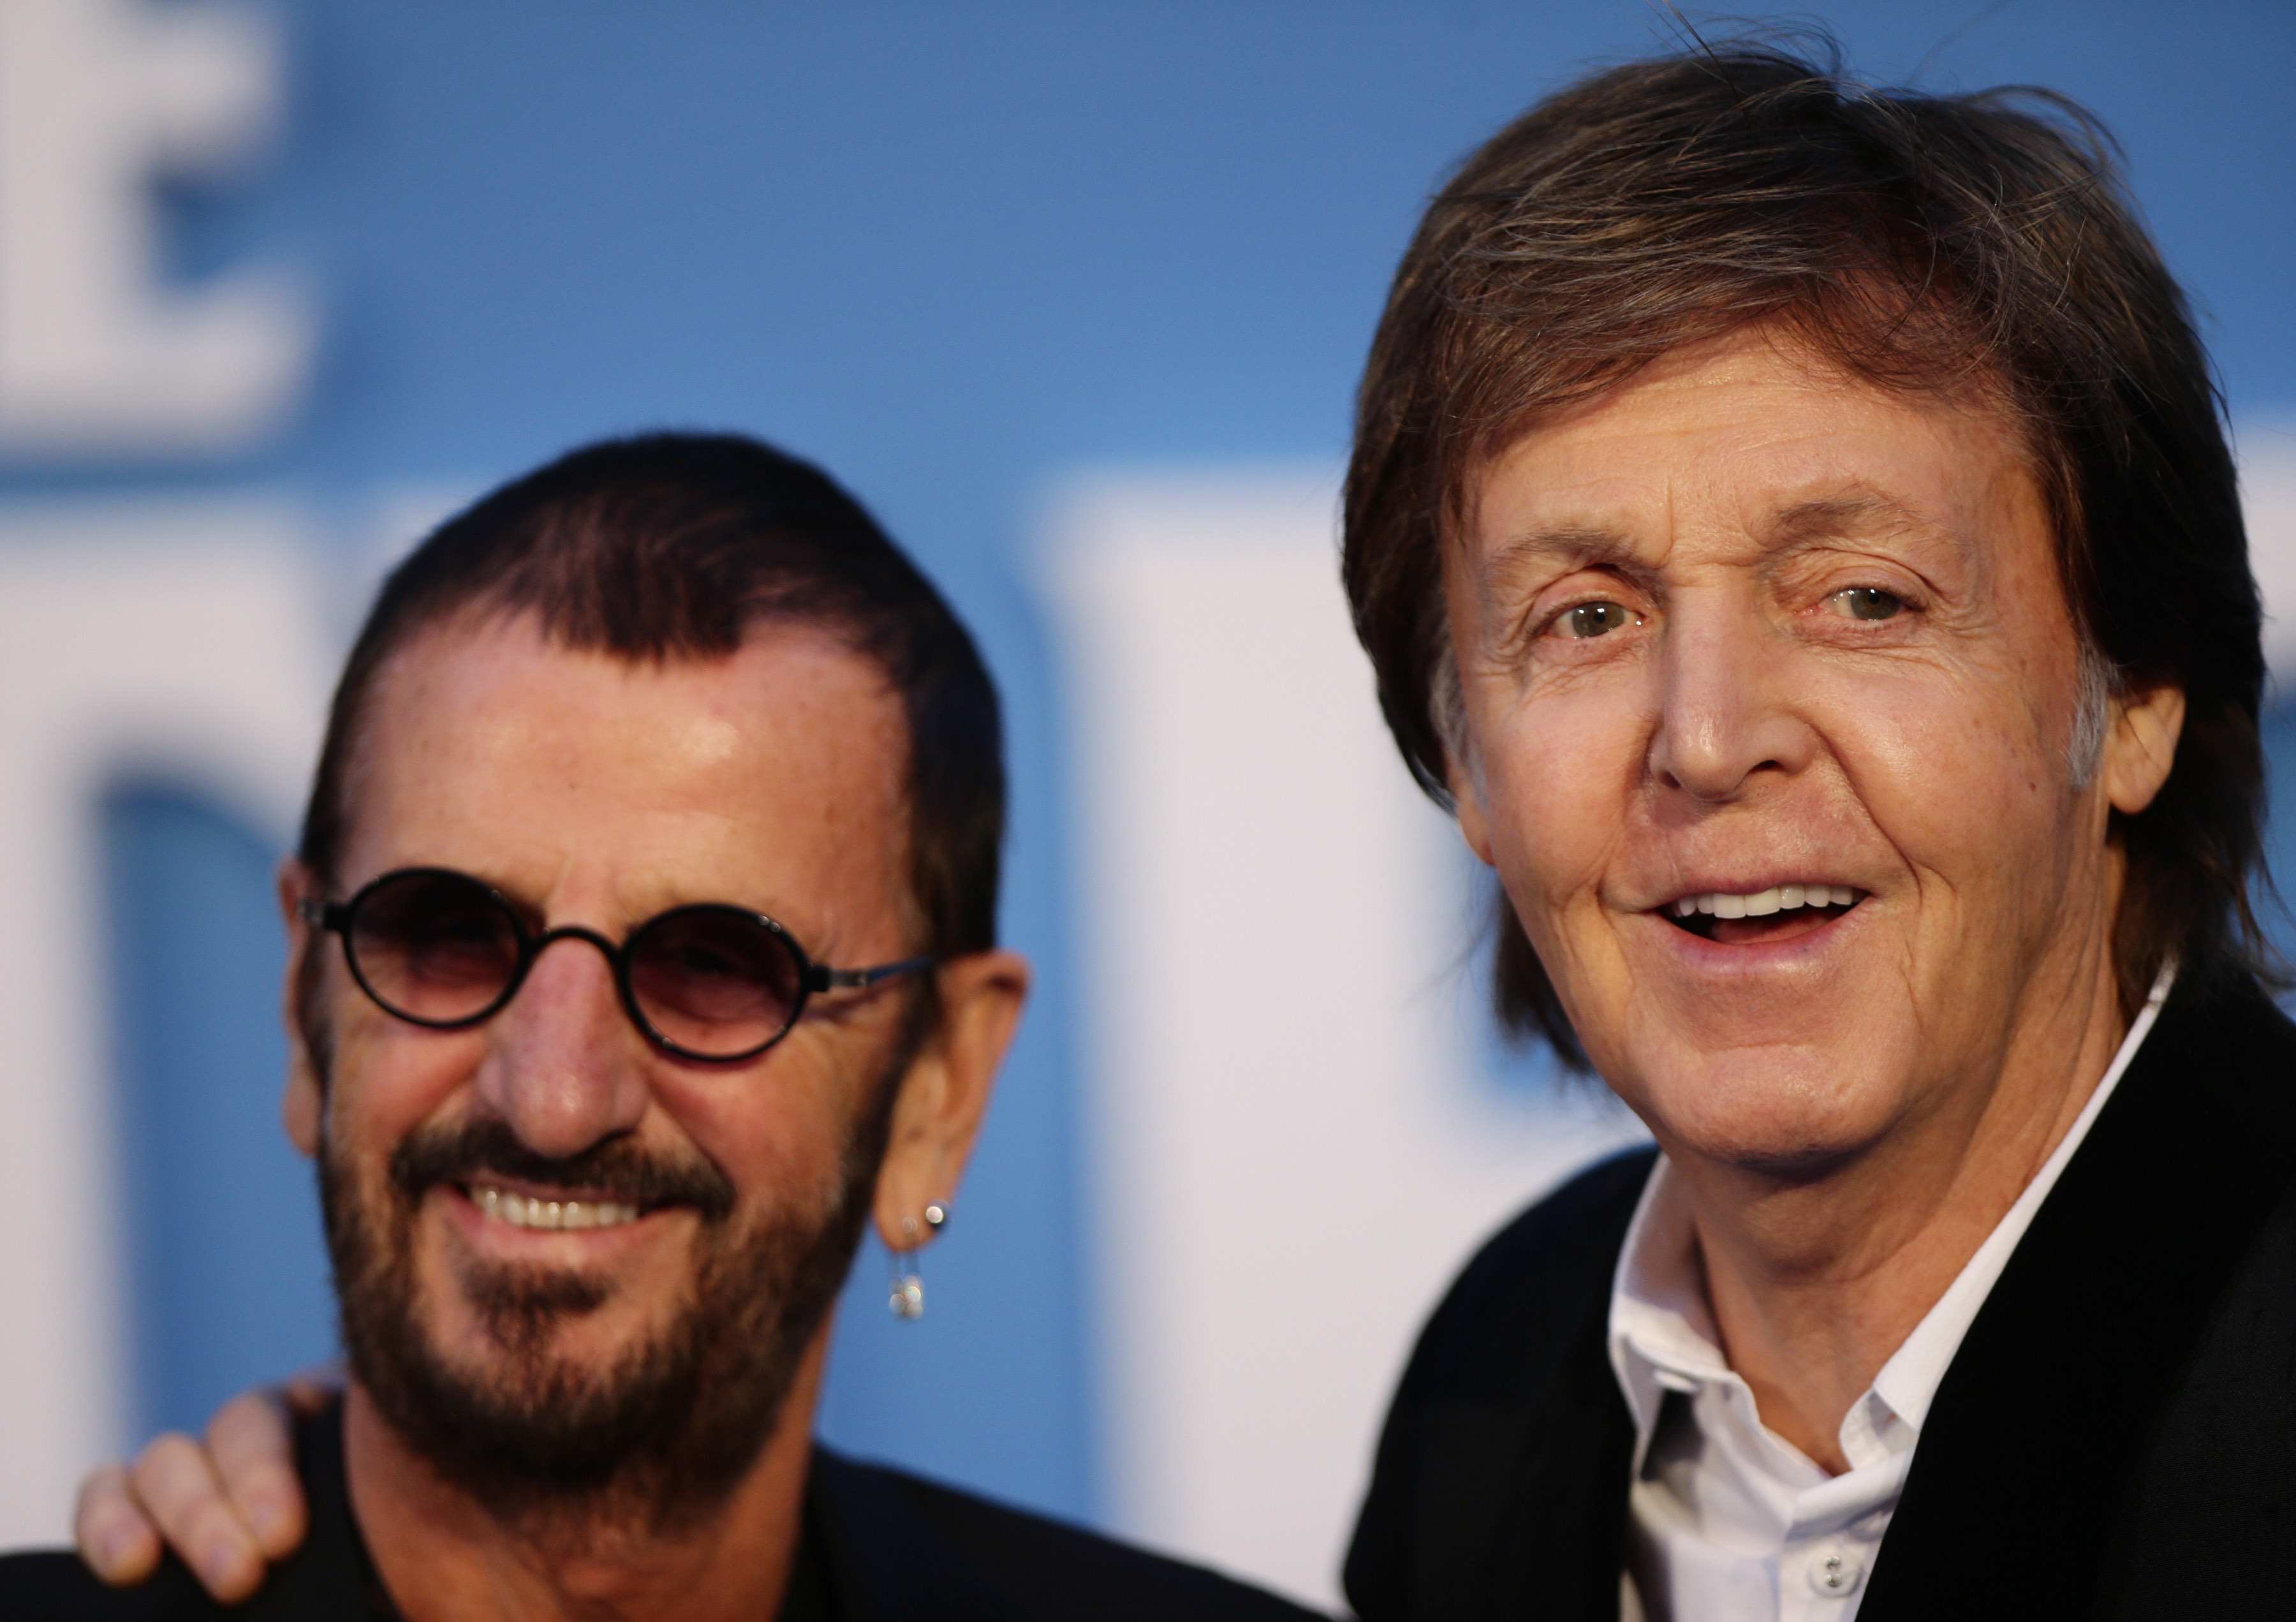 Ringo Starr Describes Drumming Up Knighthood As An Honour And A